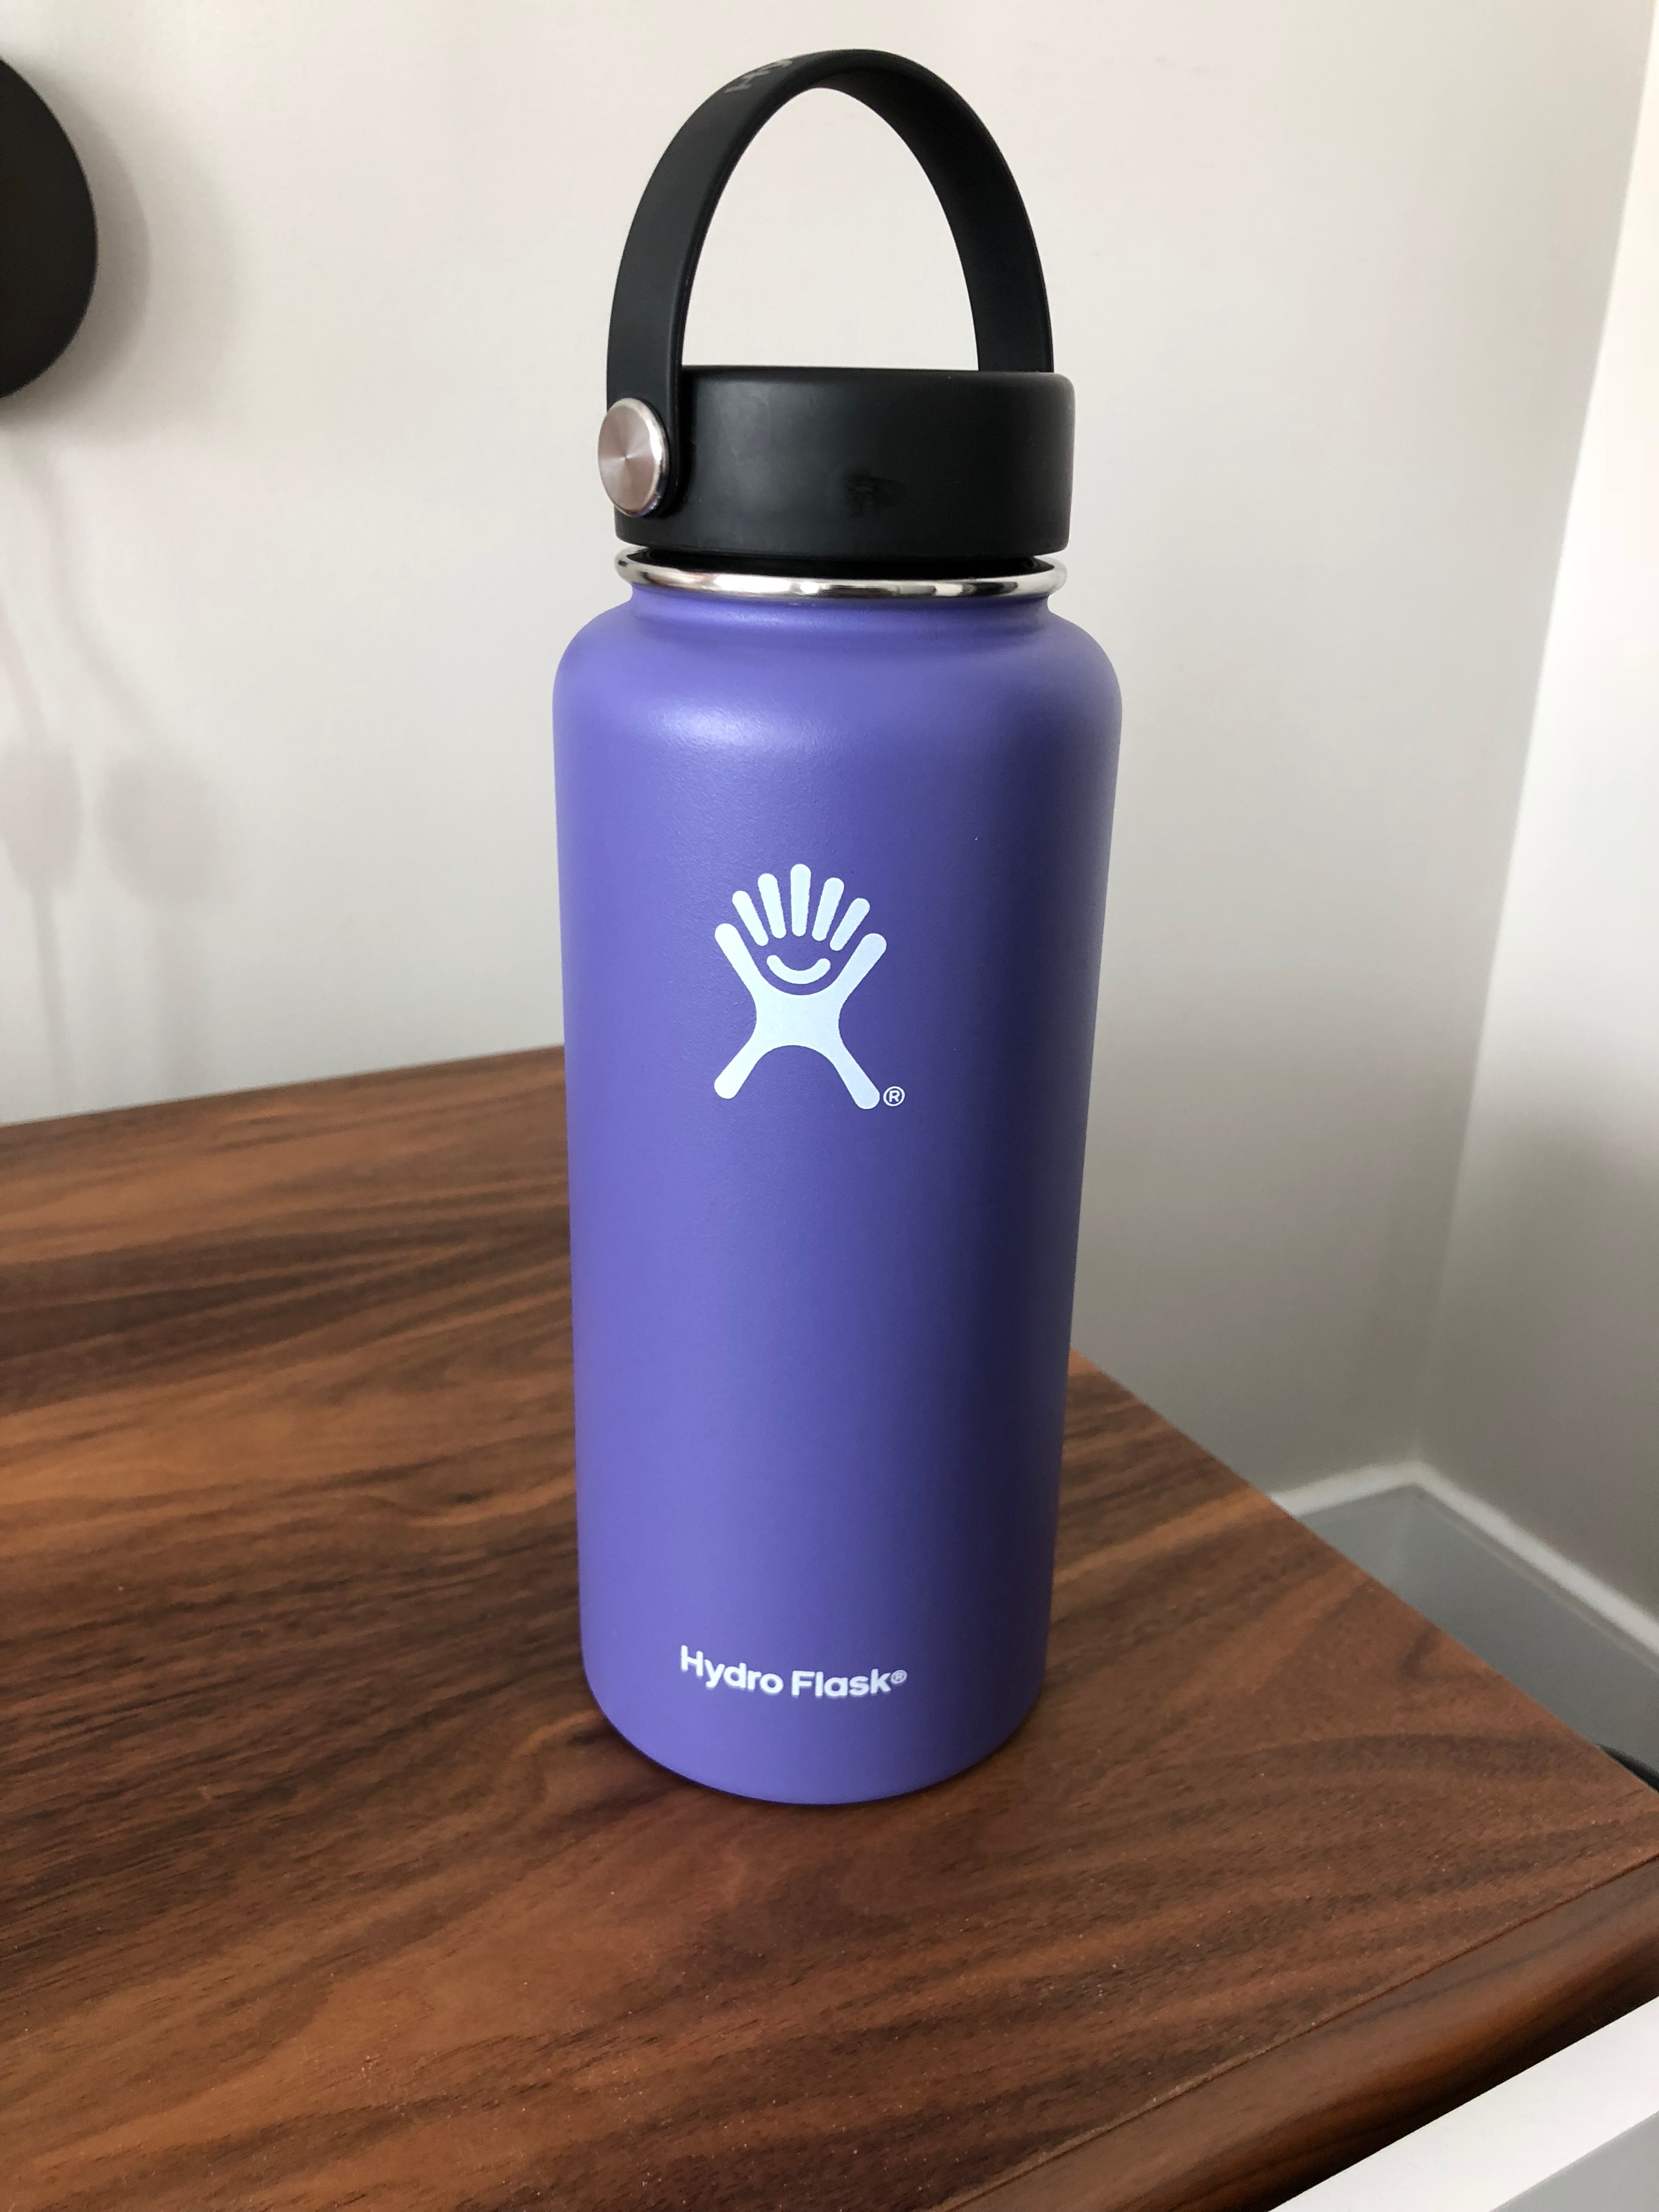 Hyrdo Flask Bottle